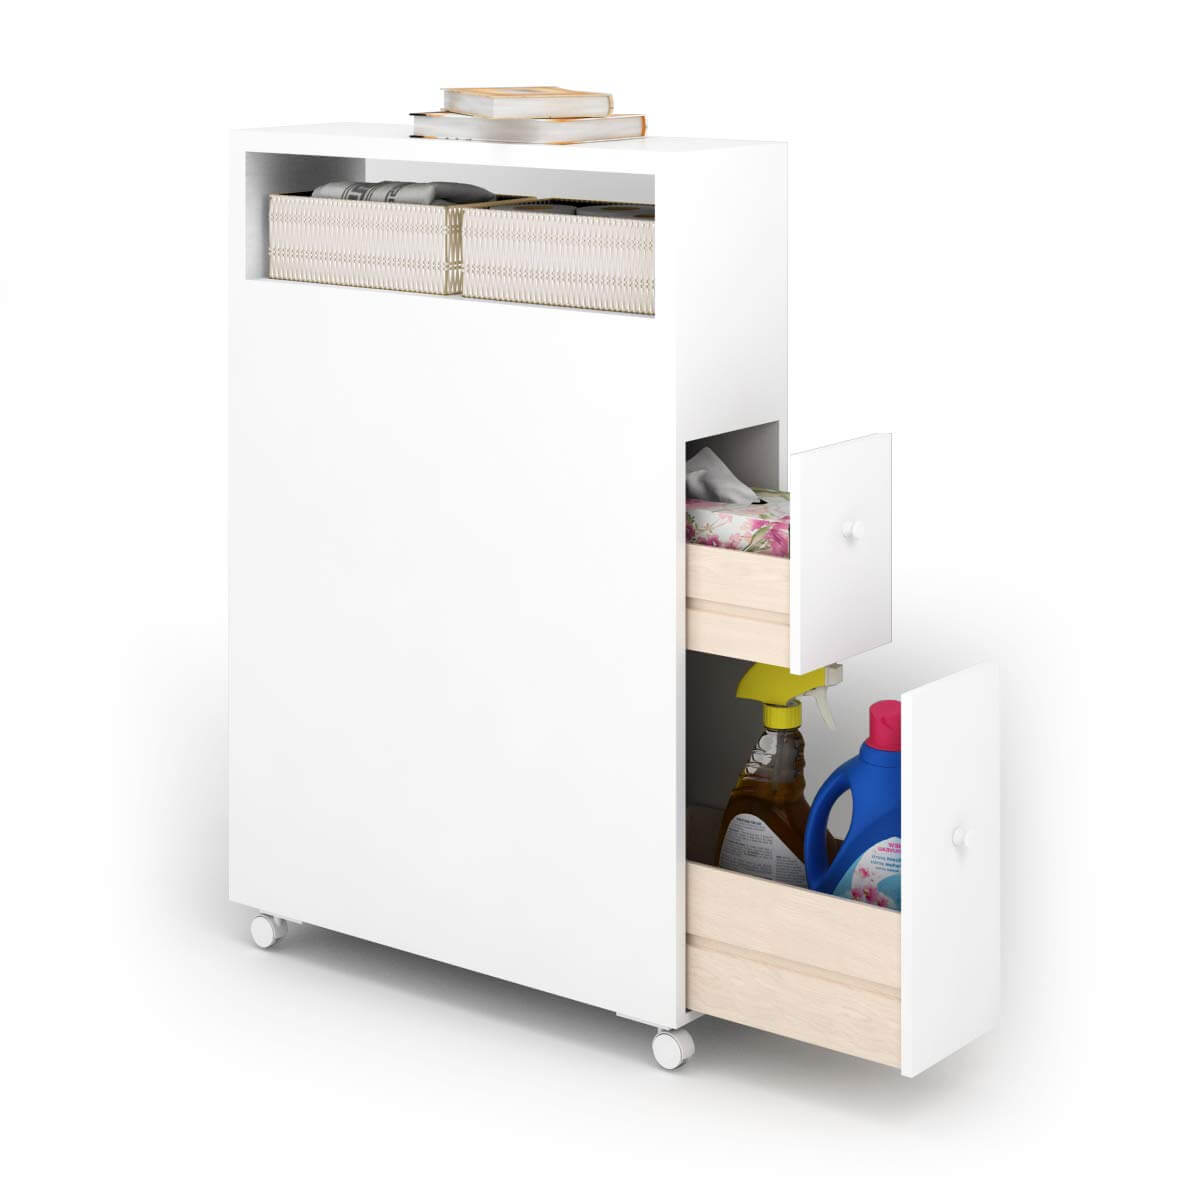 Space Saving Cabinet with Storage